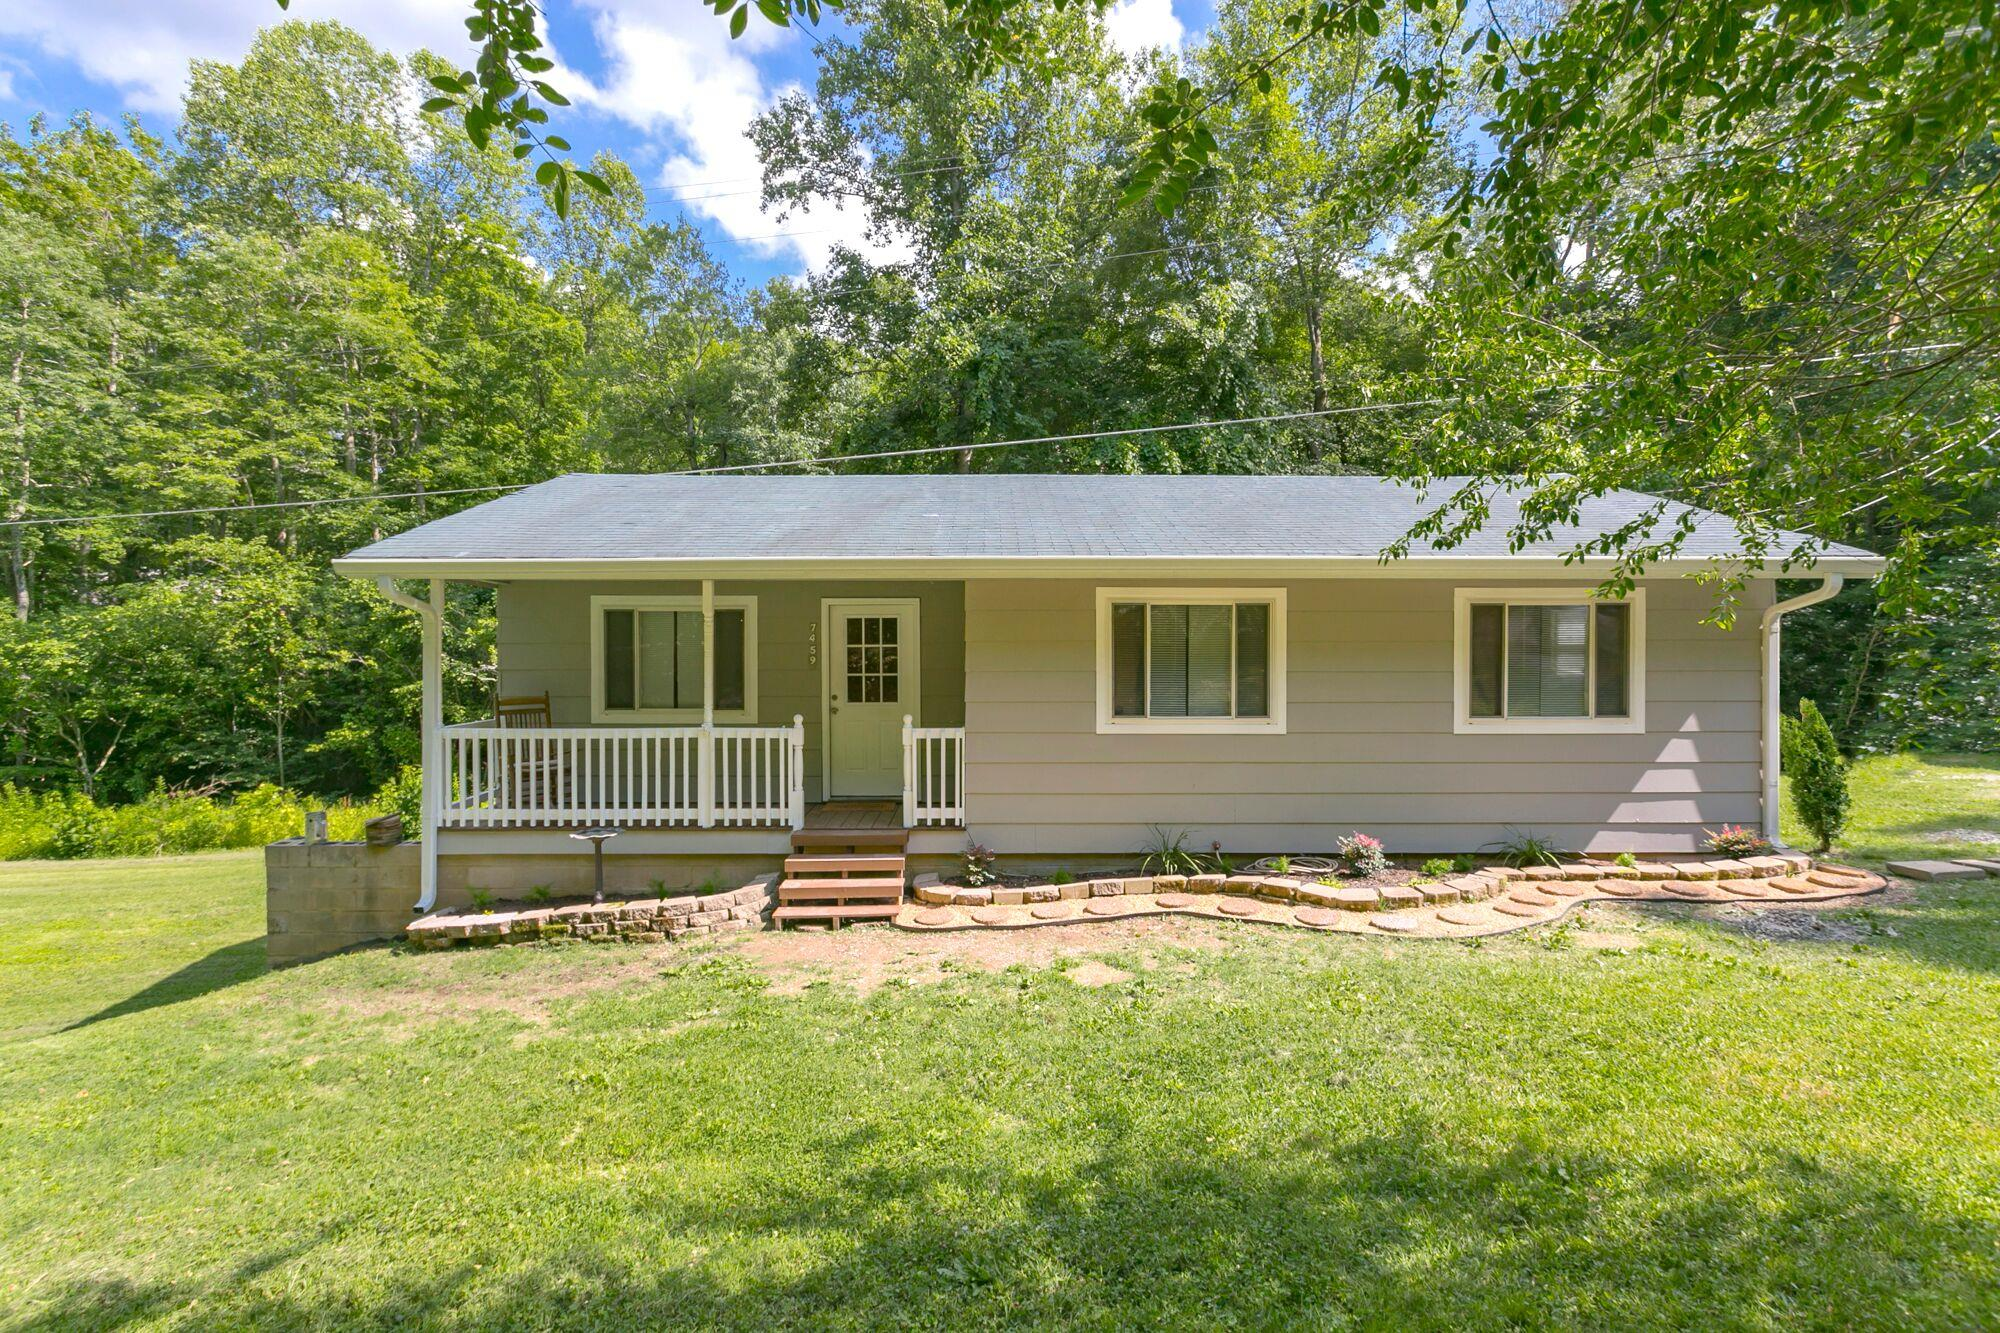 7459 Horn Tavern Rd, Fairview in Williamson County County, TN 37062 Home for Sale